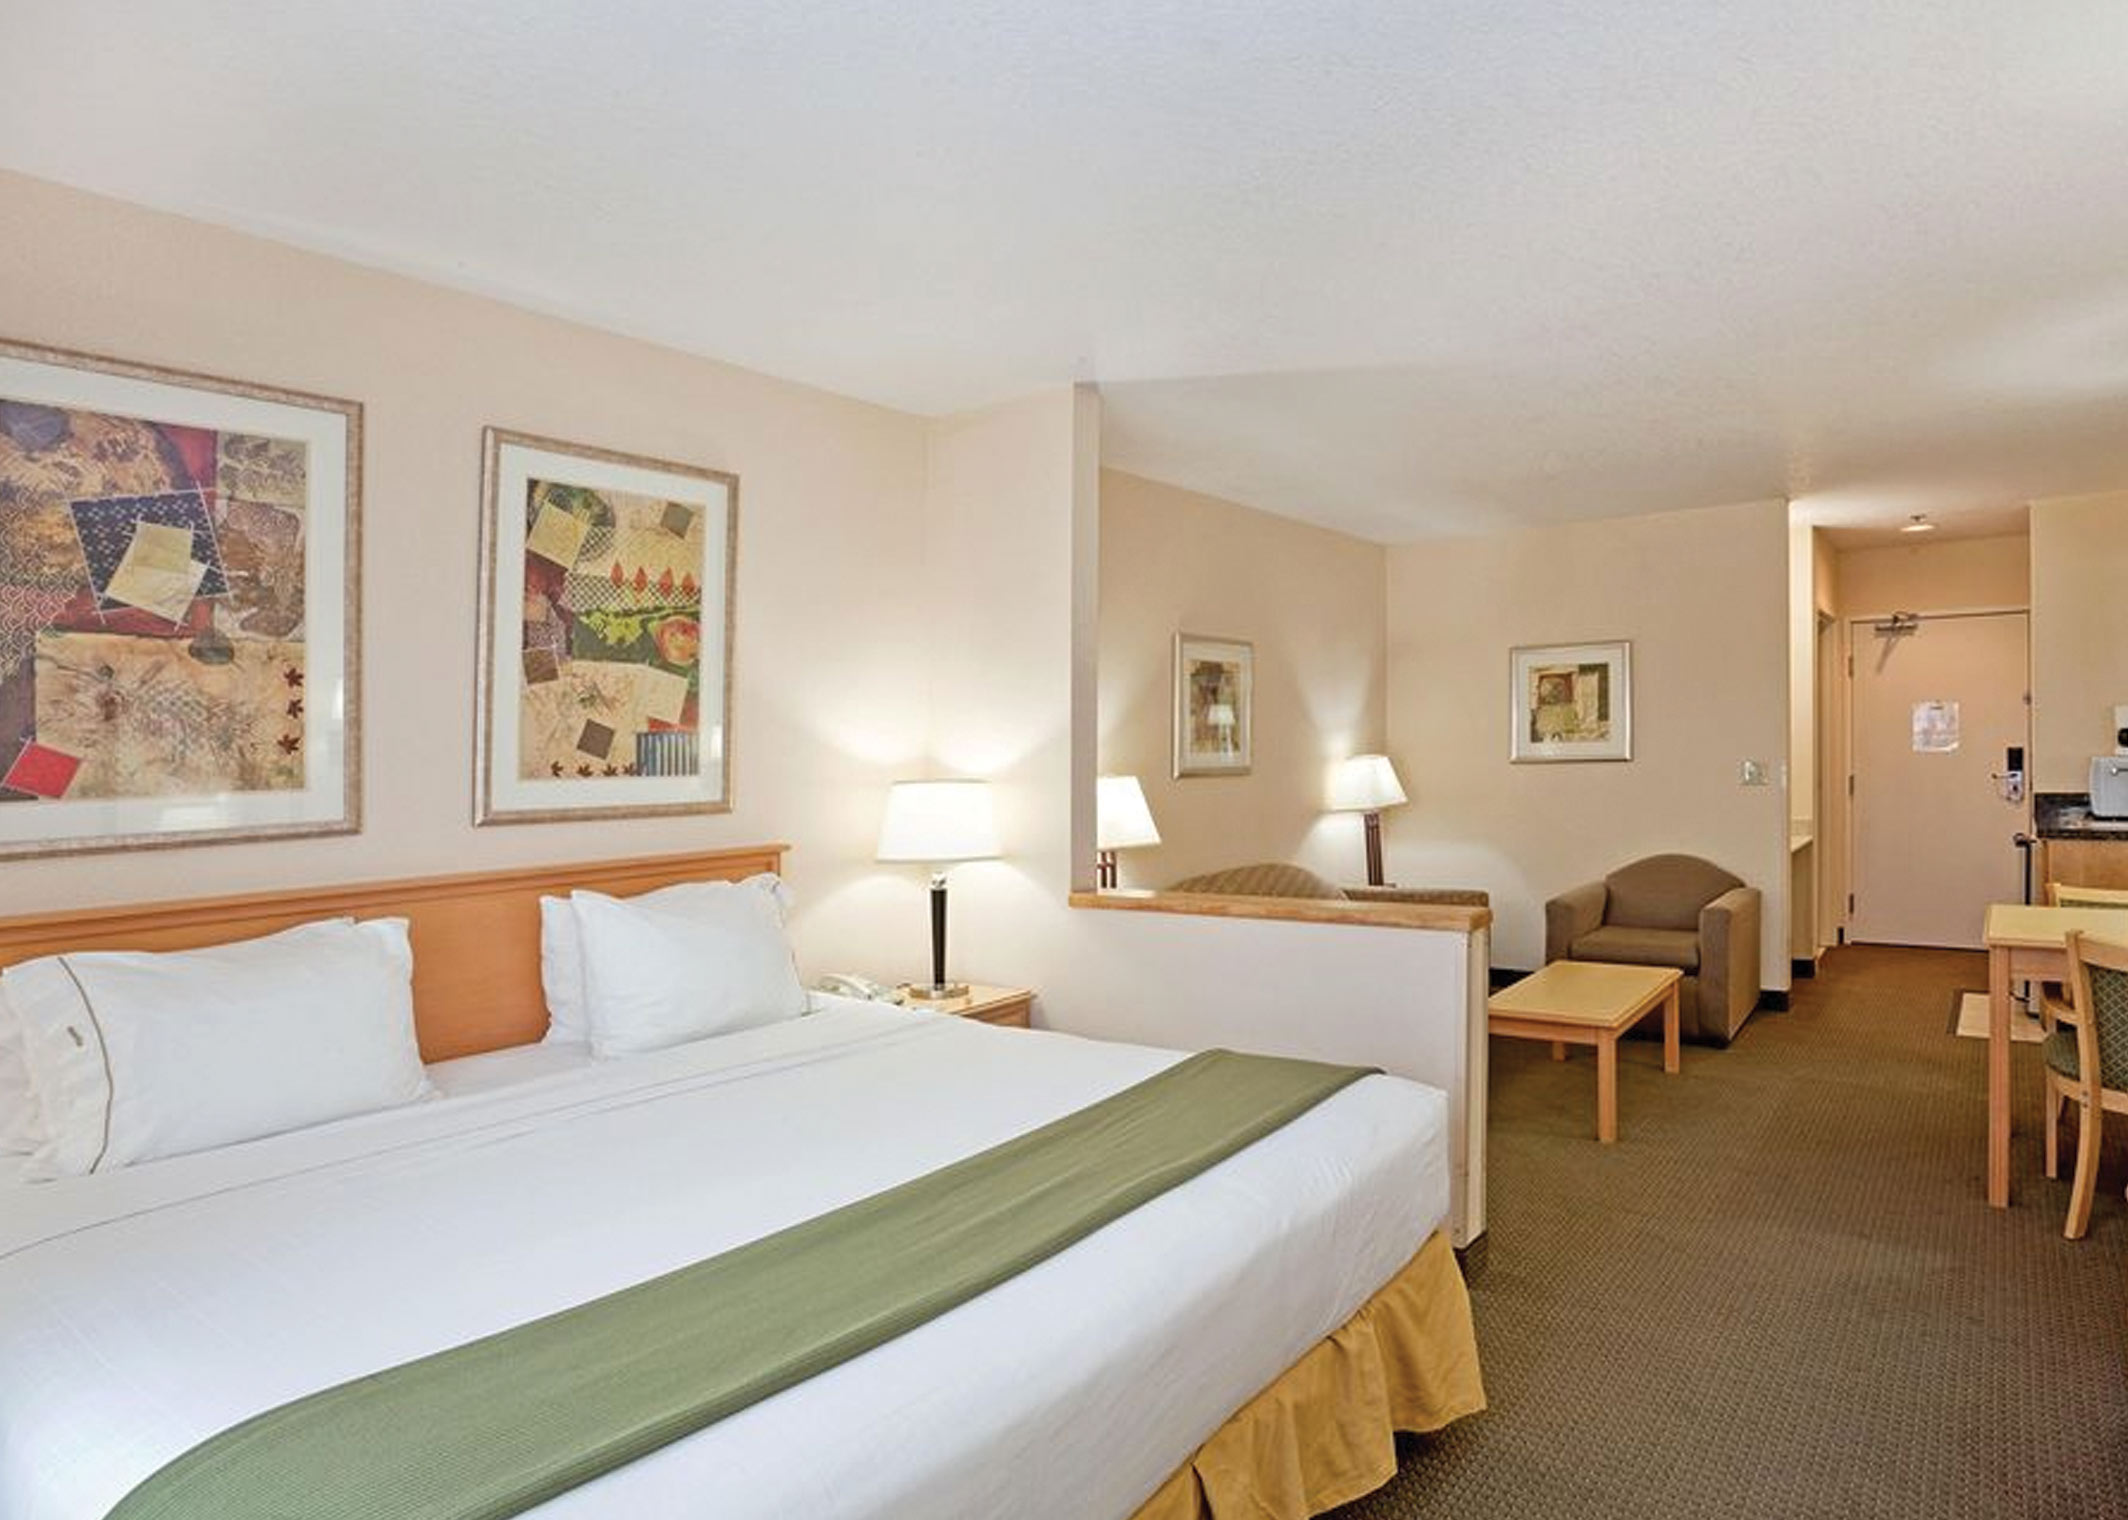 hotel room with bed, soft seating area and case goods